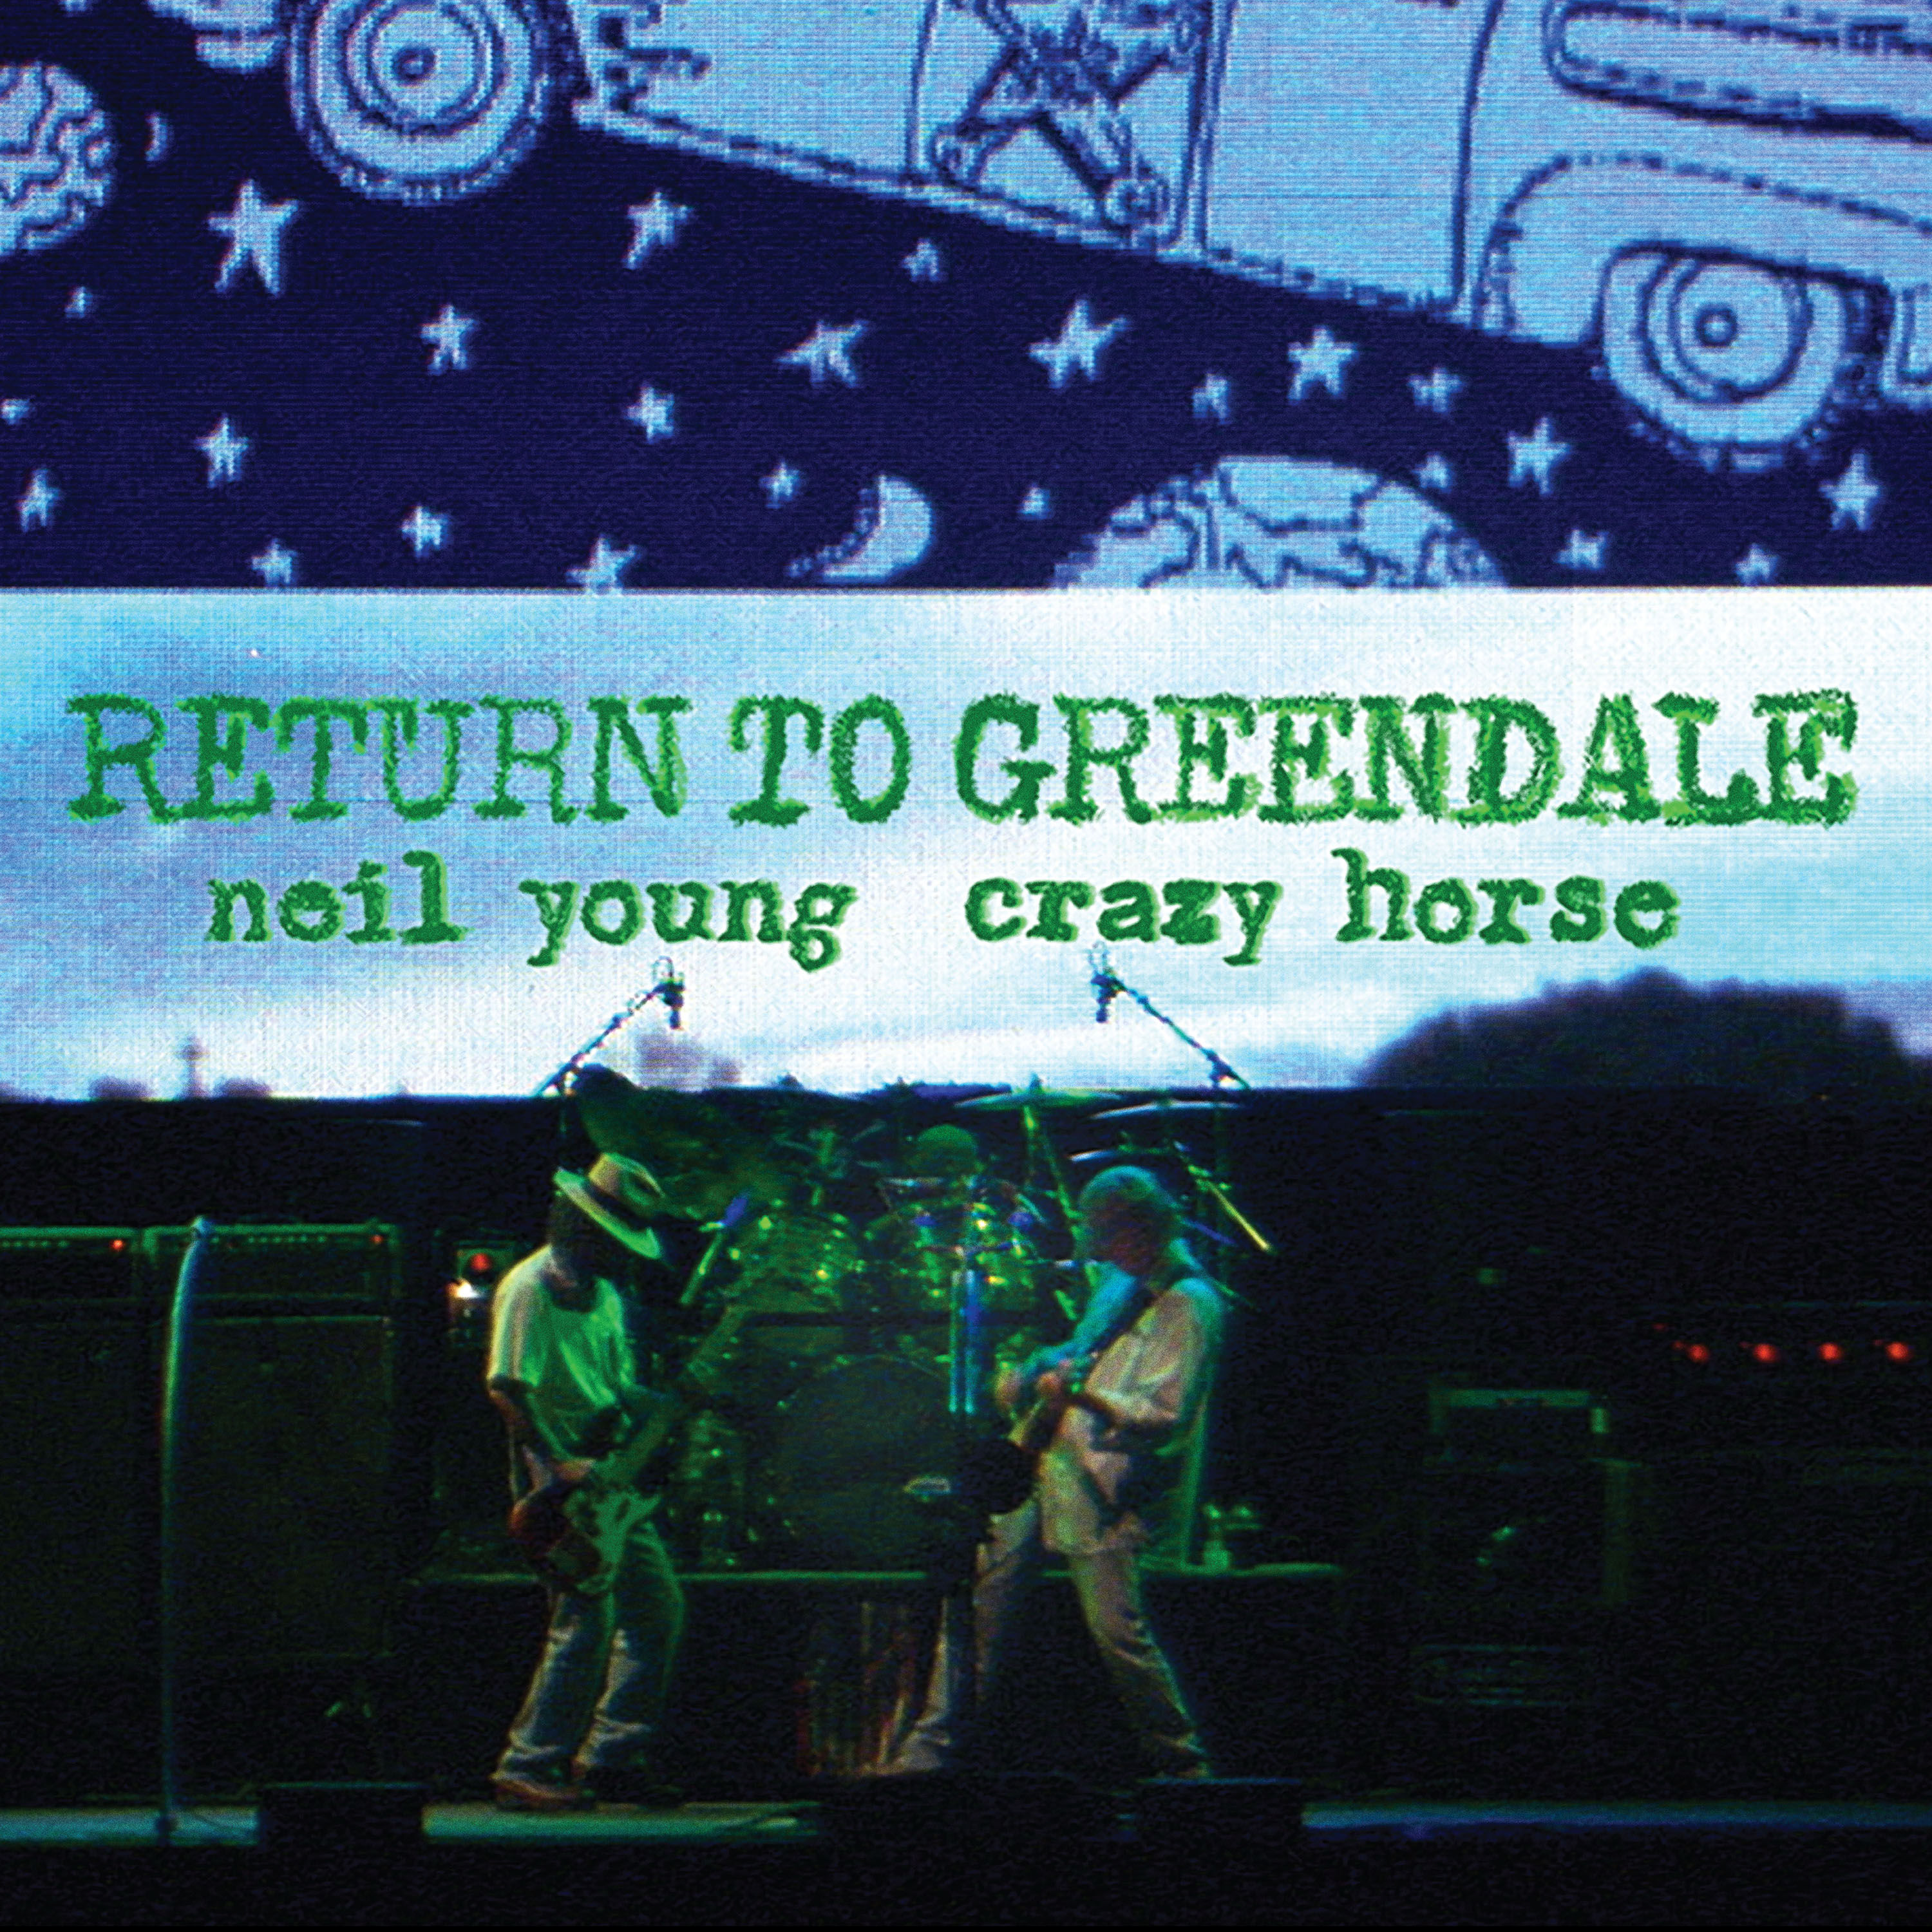 Neil Young & Crazy Horse - Return To Greendale [2xLP]